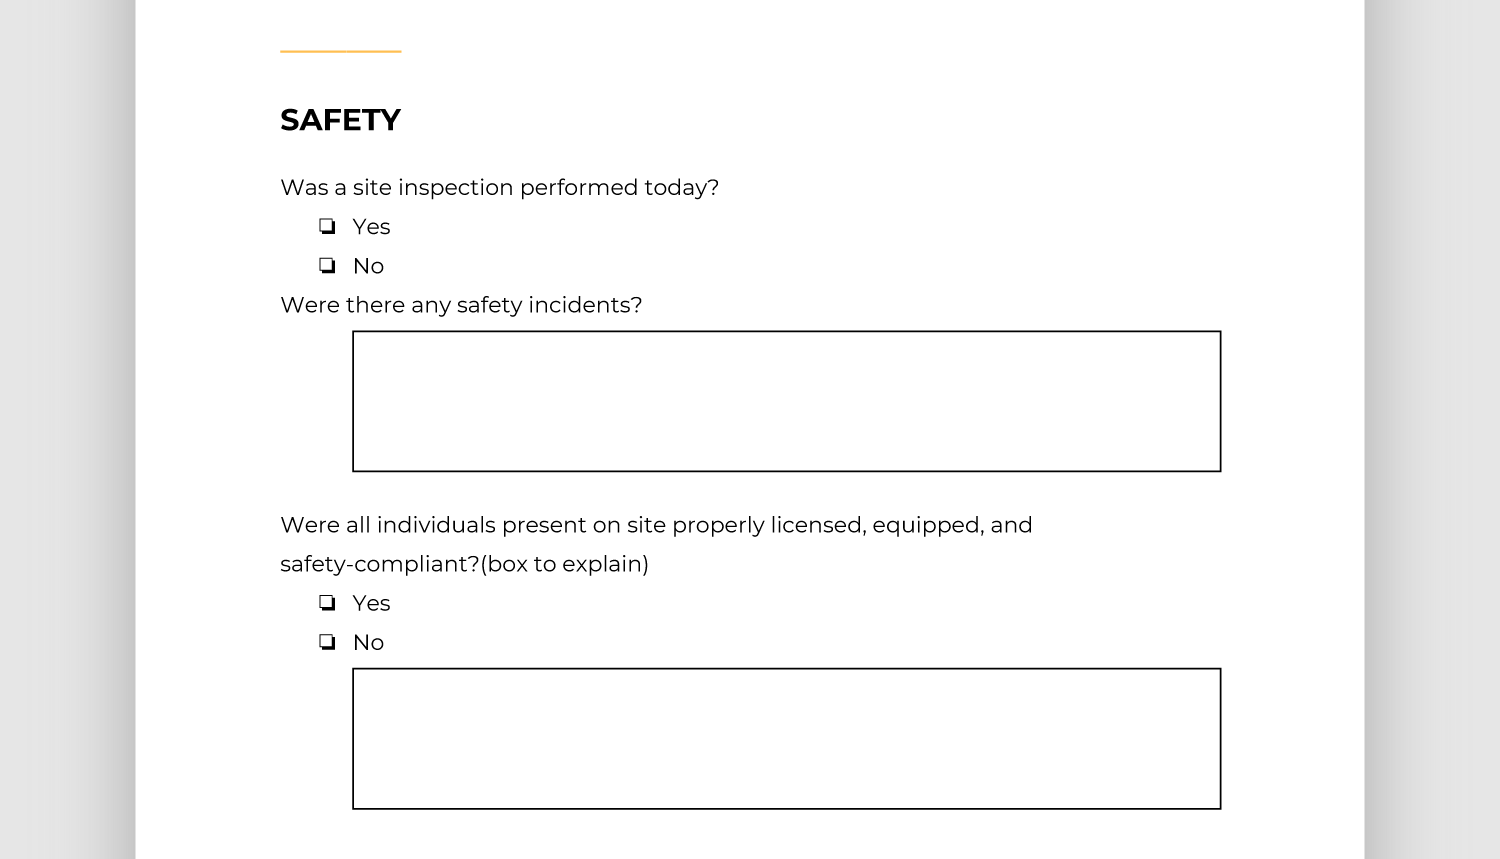 Screencap of safety section of report